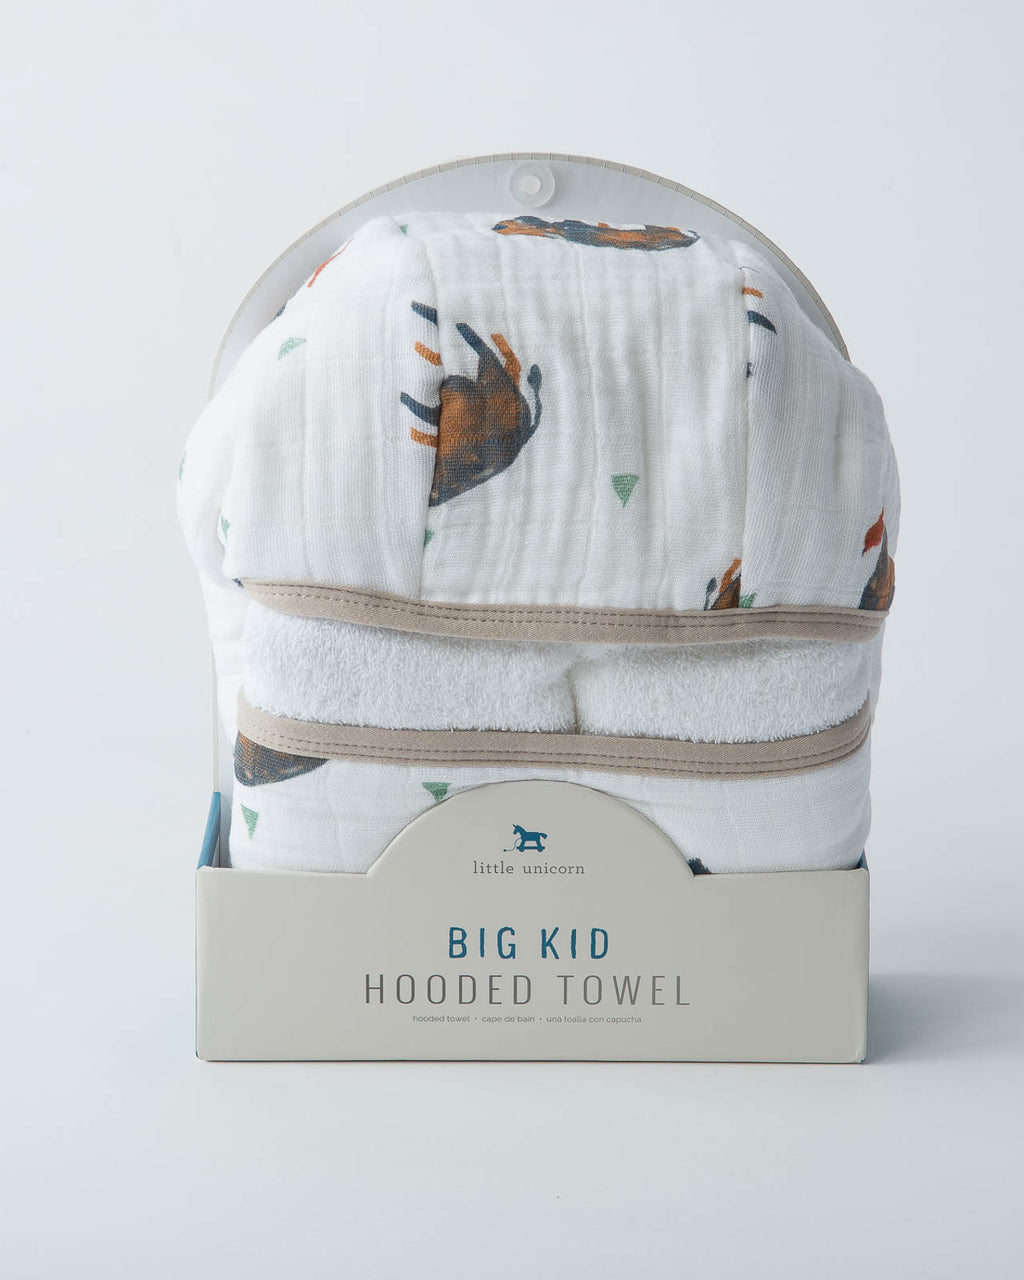 Big Kid Hooded Towel - Bison